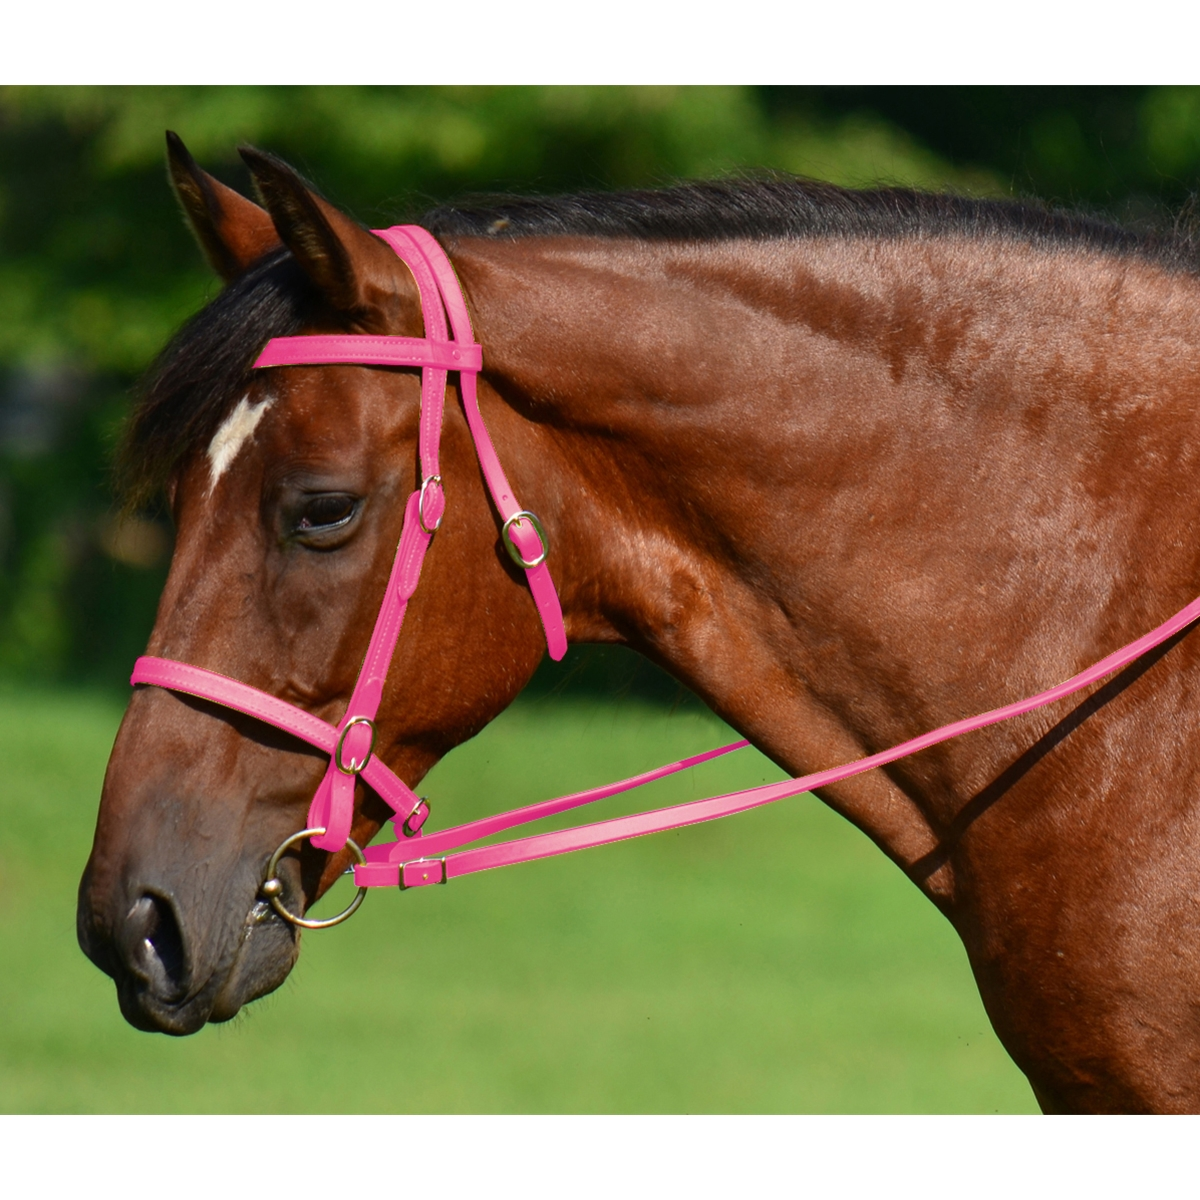 Buy Pink English Bridles For Sale From Two Horse Tack